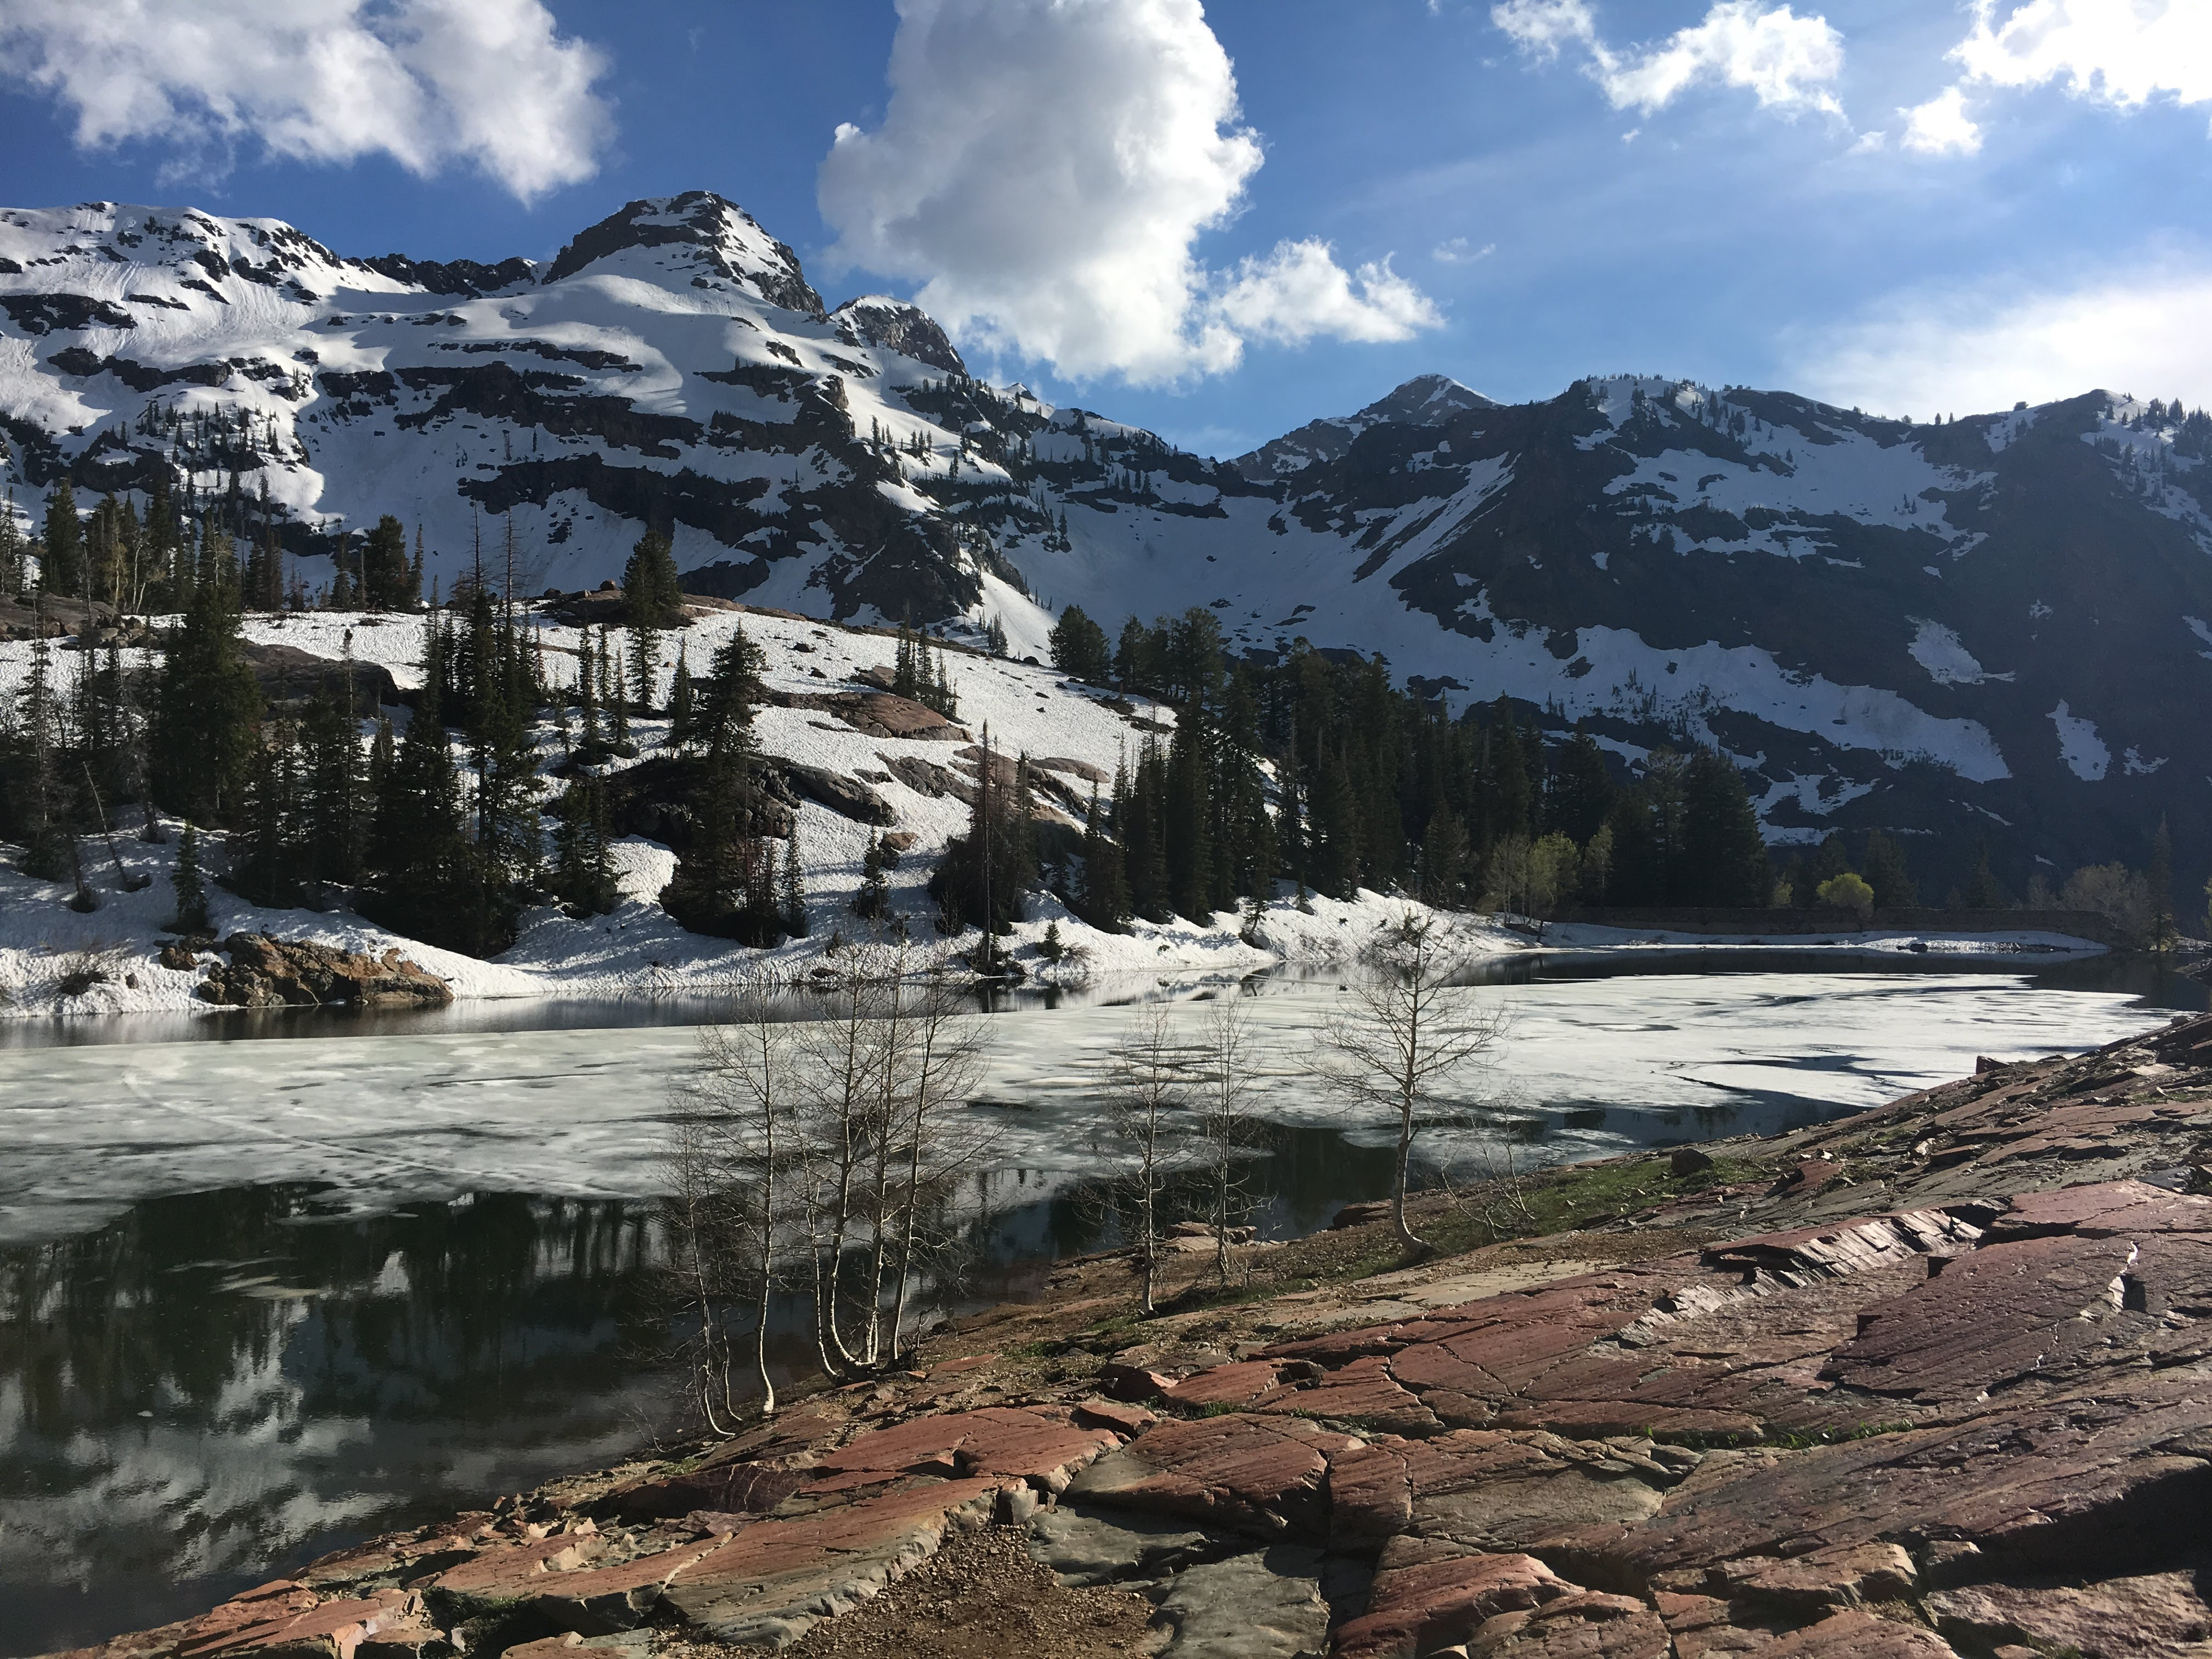 Lake Blanche — the very first hike I did while in SLC. A totally beautiful alpine lake, still partially frozen over and a lot of snow on the trail on the way up.